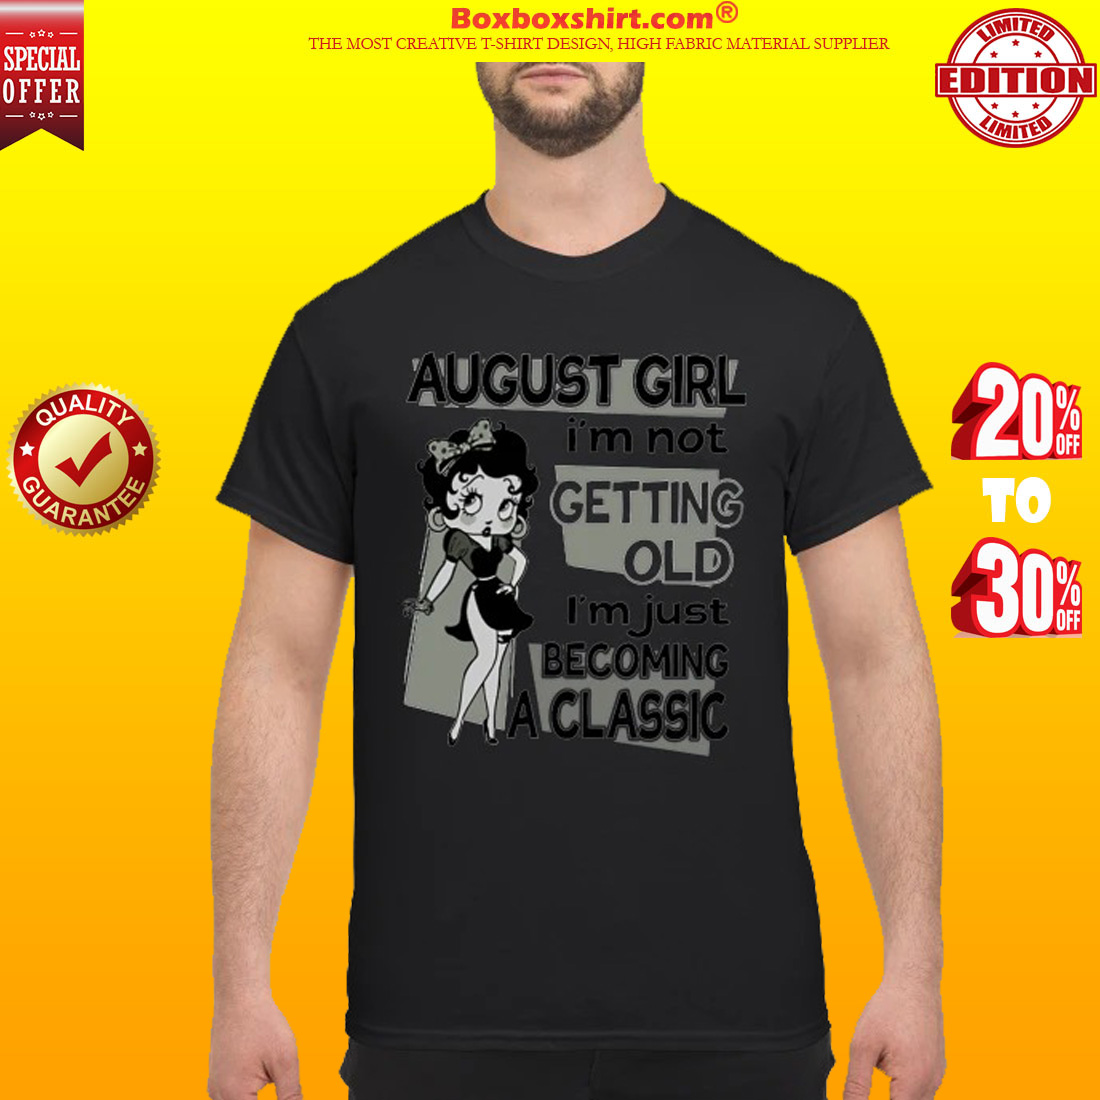 August girl I'm not getting old I'm just becoming classic shirt